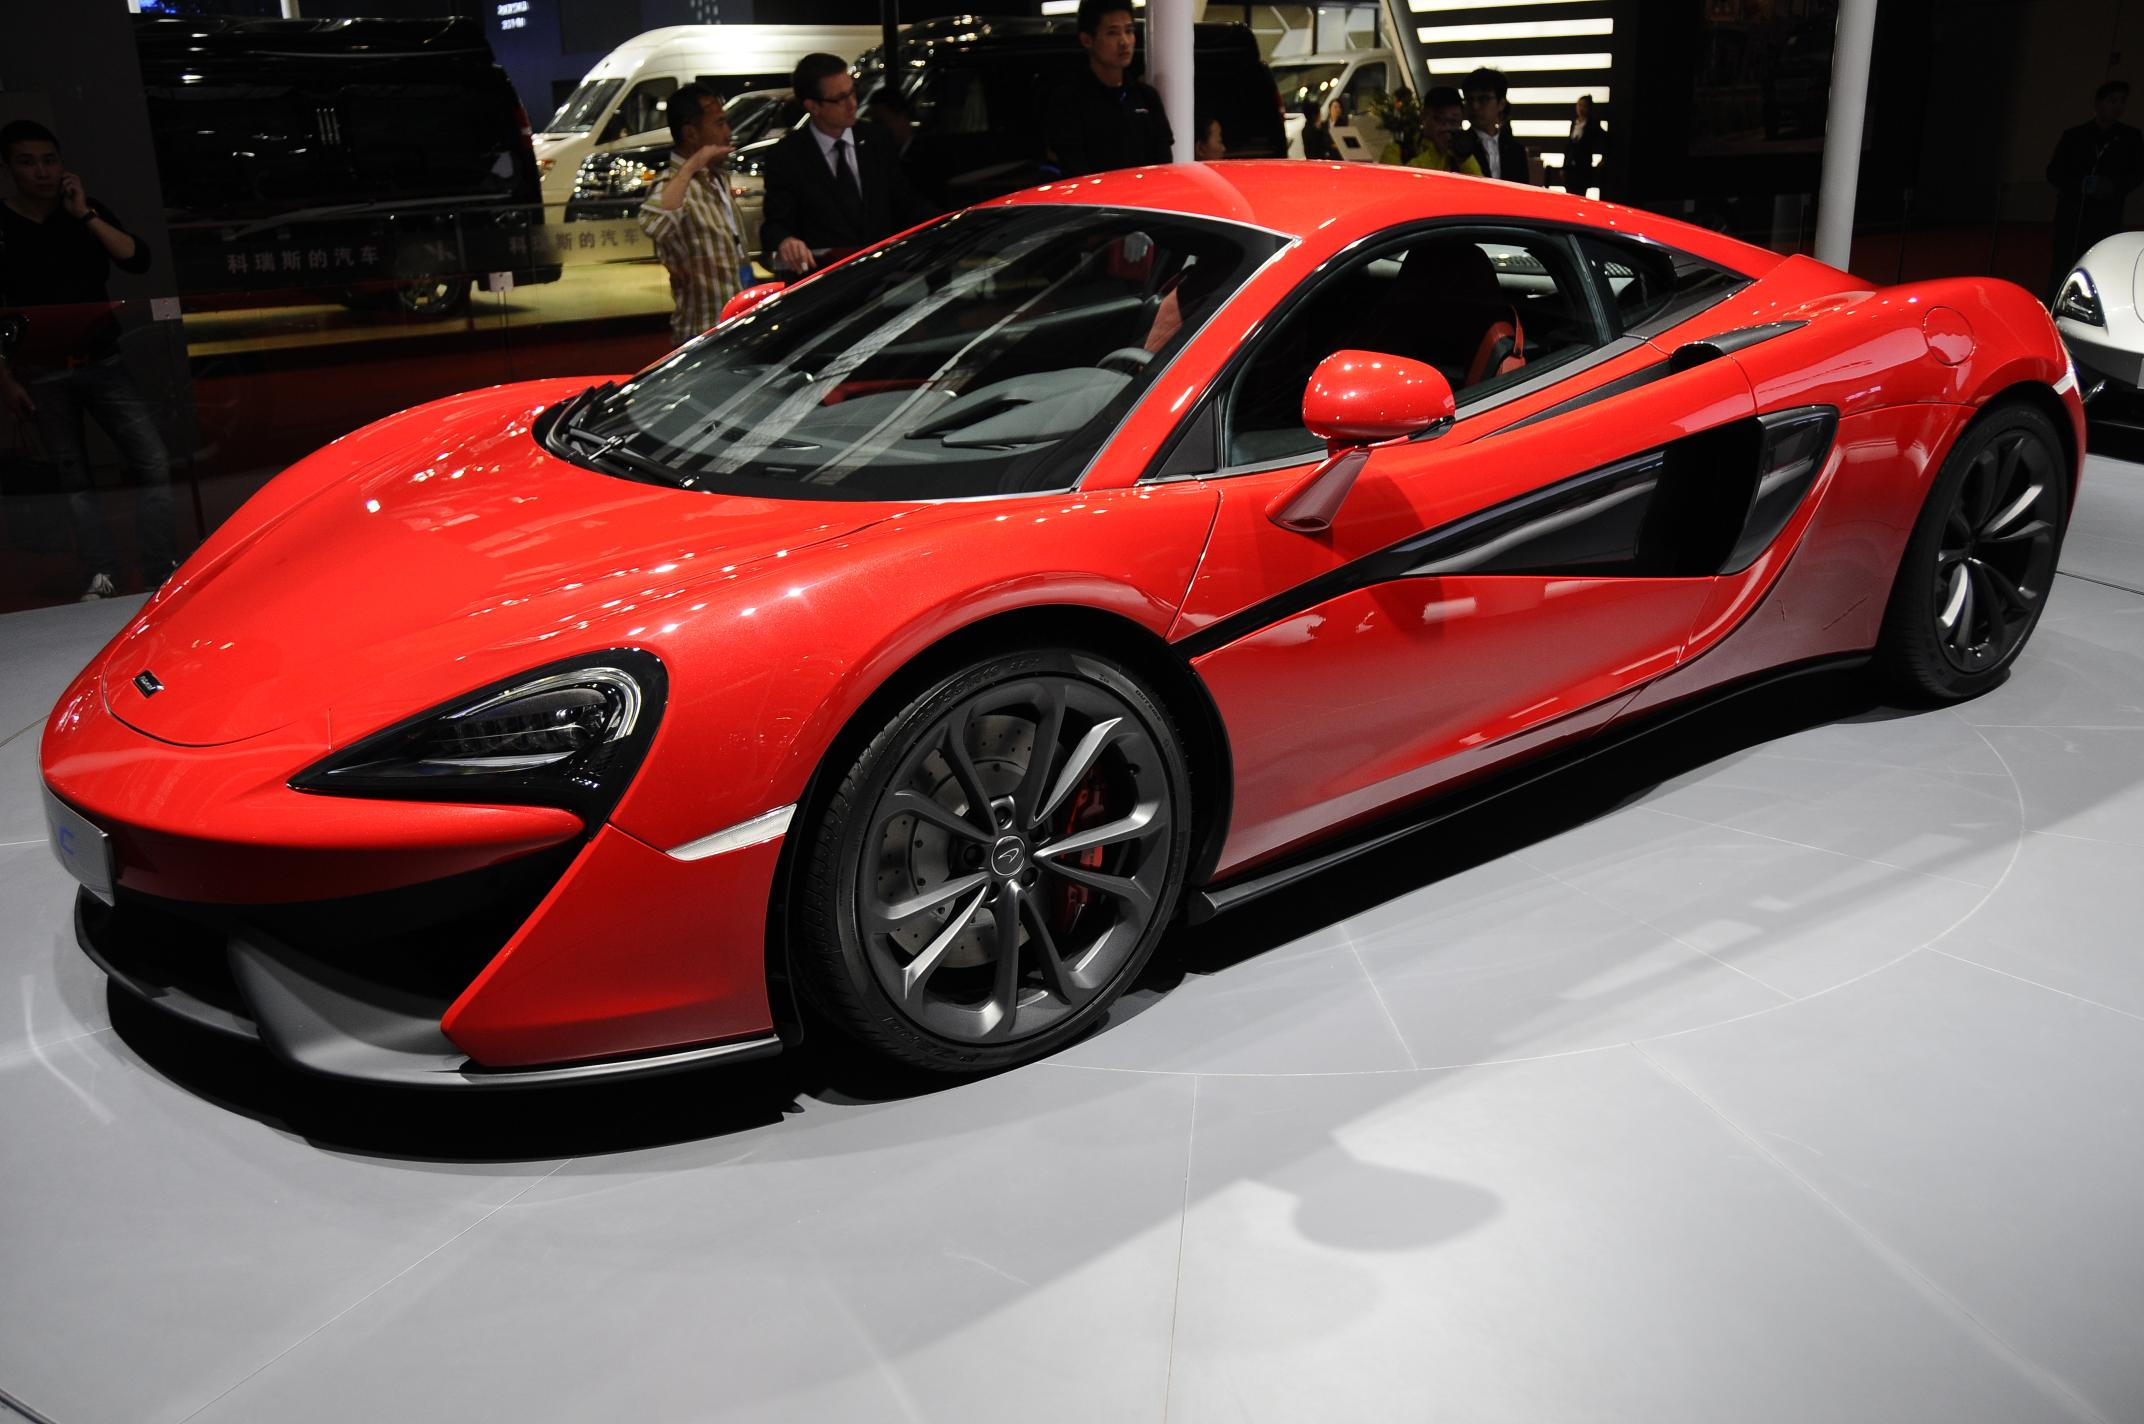 mclaren 540c coupe is unveiled in shanghai as the second model in